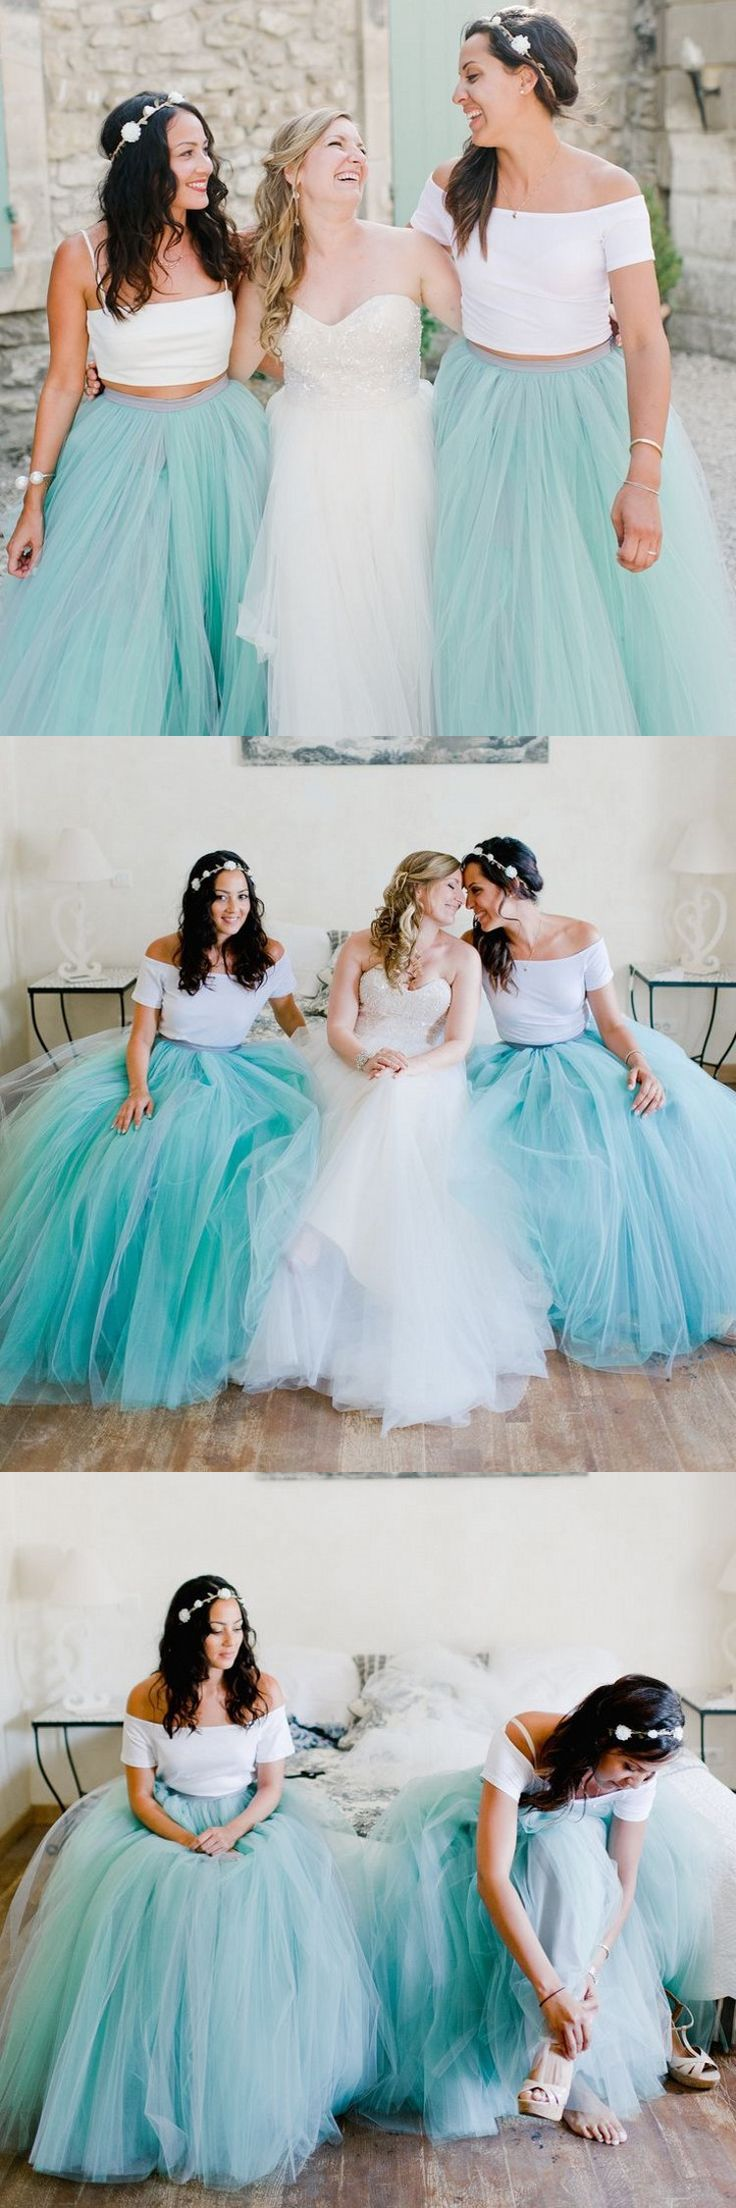 tutu skirt for adults, 2017 bridesmaid dress, long bridesmaid dress, blue bridesmaid dress, tulle bridesmaid dress, tutu skirt